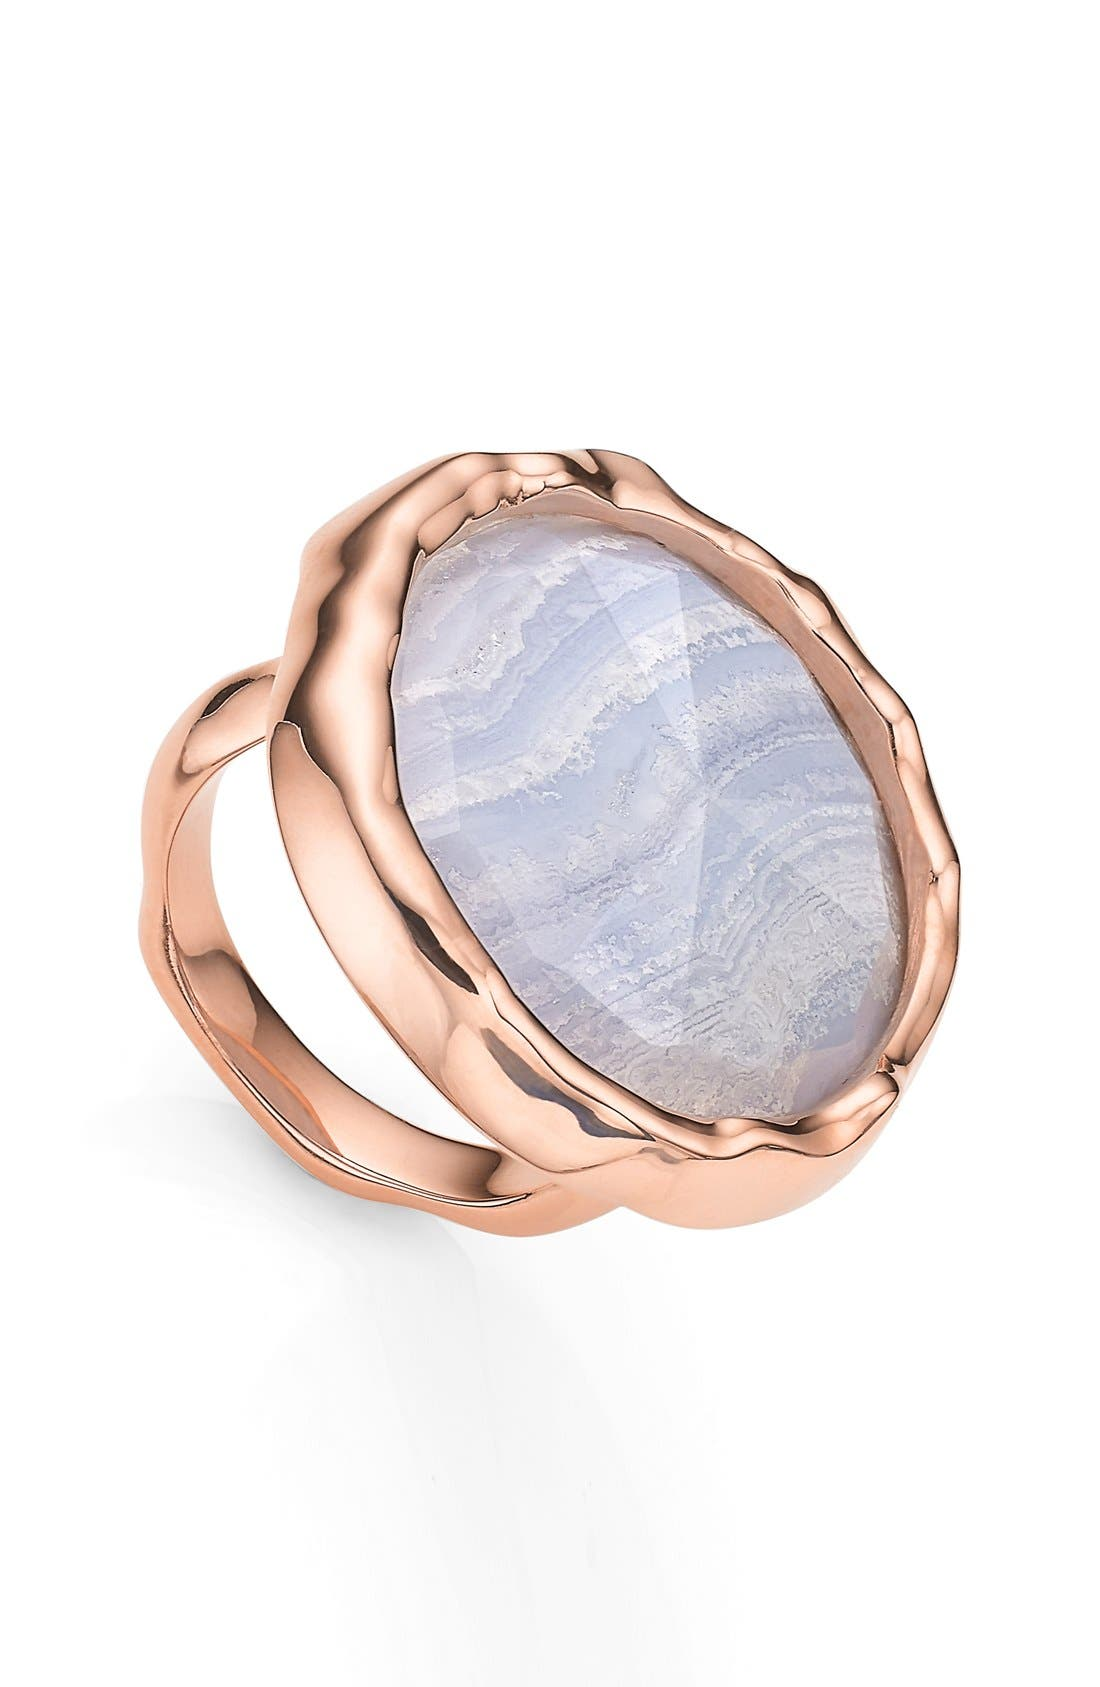 'Siren' Semiprecious Stone Ring,                             Main thumbnail 1, color,